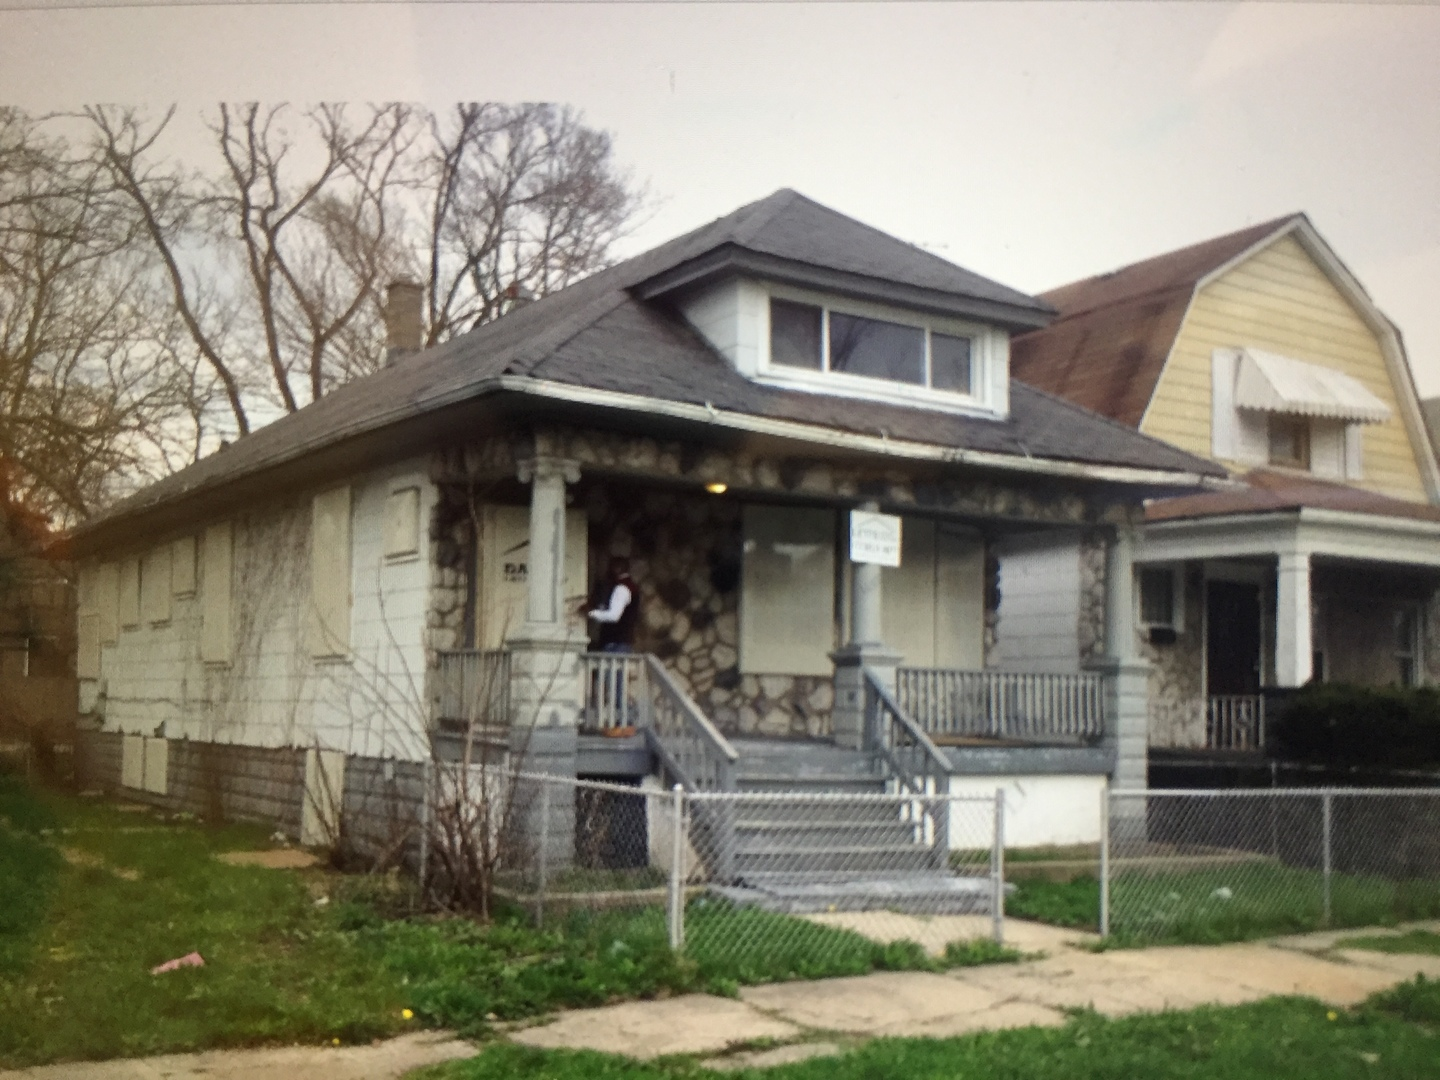 11327 South YALE, CHICAGO, Illinois, 60628